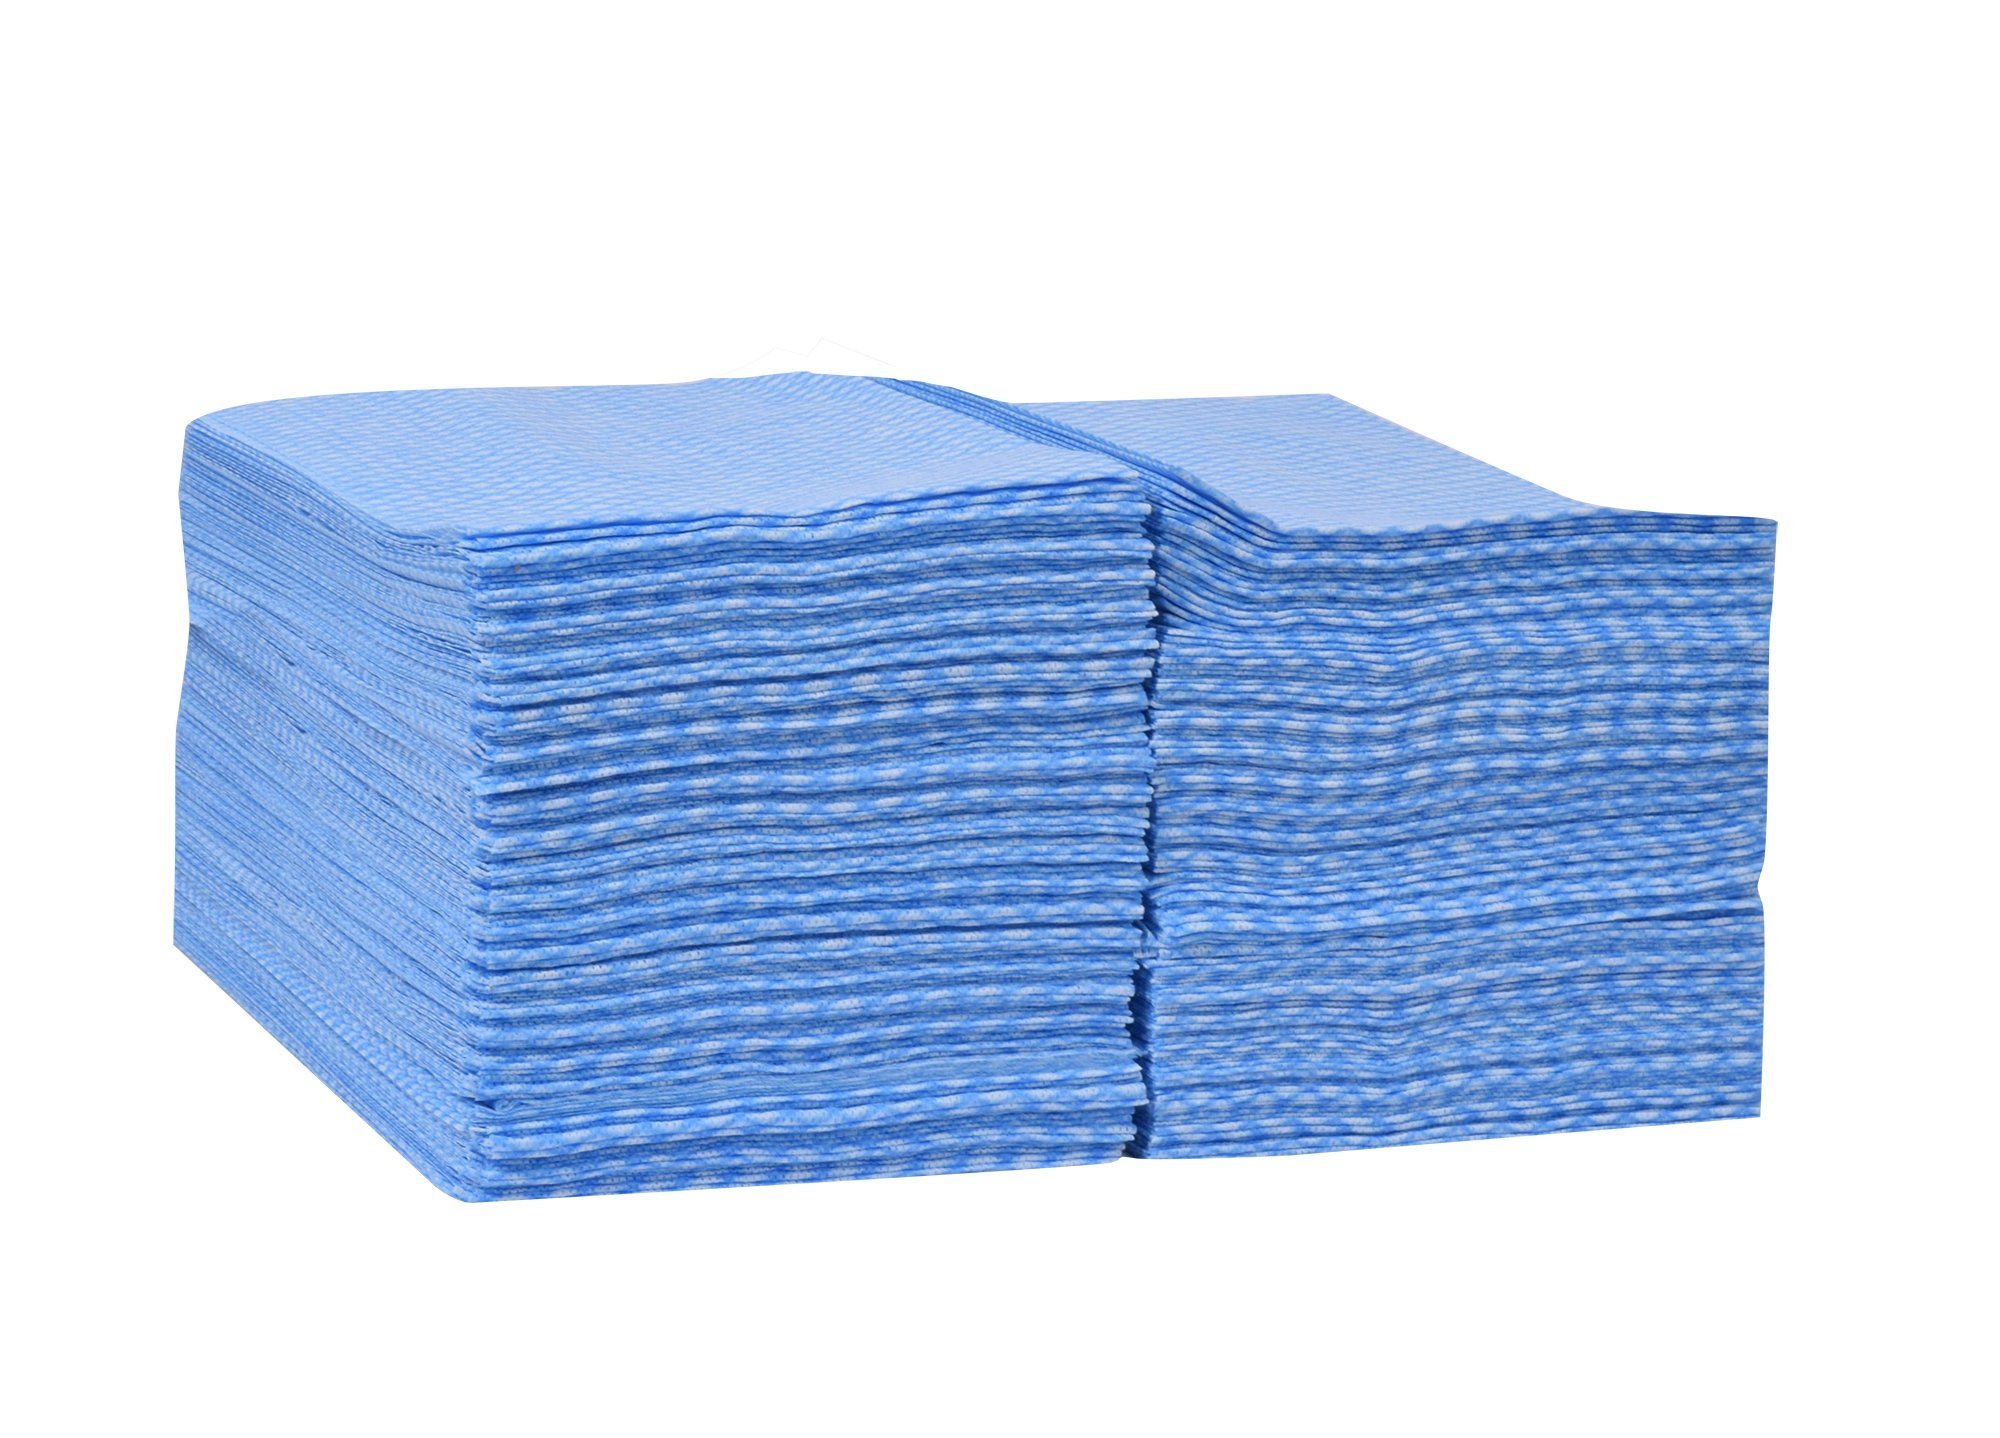 Tork 192181A Foodservice Cloth, 1/4 Fold, 1-Ply, 13'' Width x 21'' Length, Blue/White (Case of 1 Box, 240 Cloths) by Tork (Image #2)